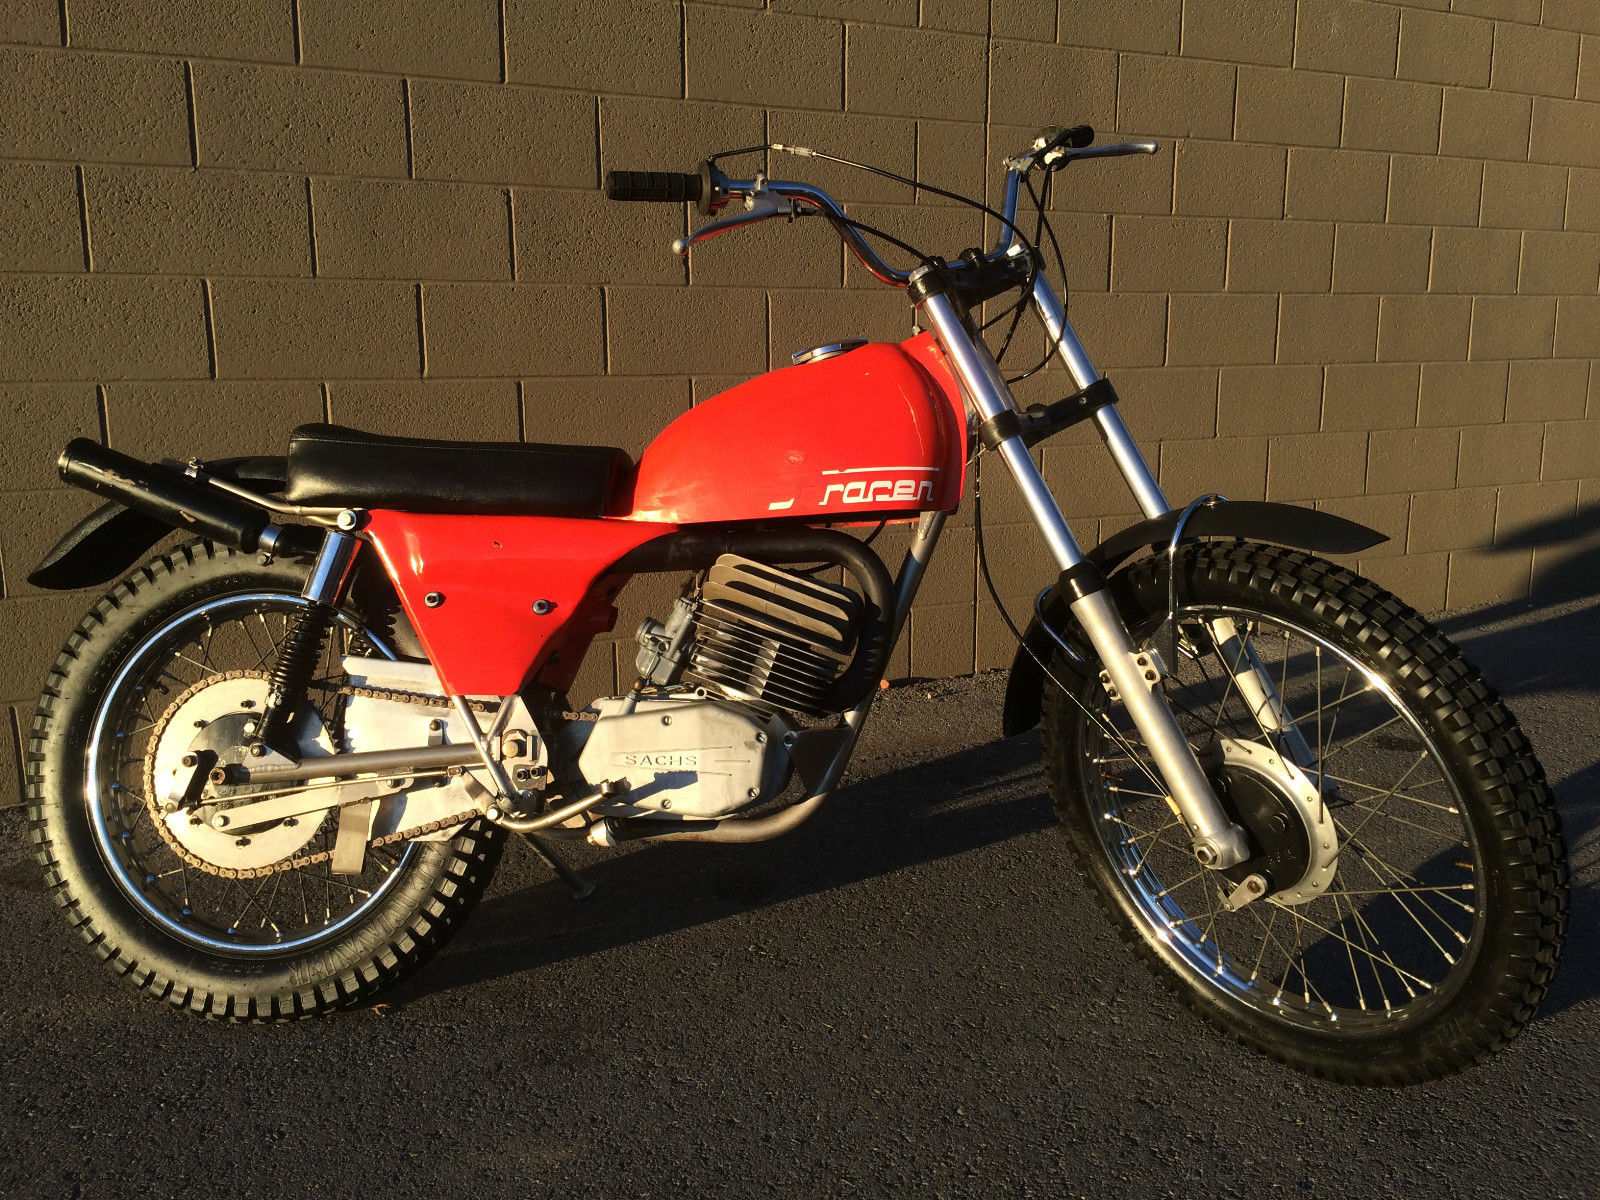 1970 Honda 125cc Motorcycle Saracen Trials 125 Bike Urious Right Side